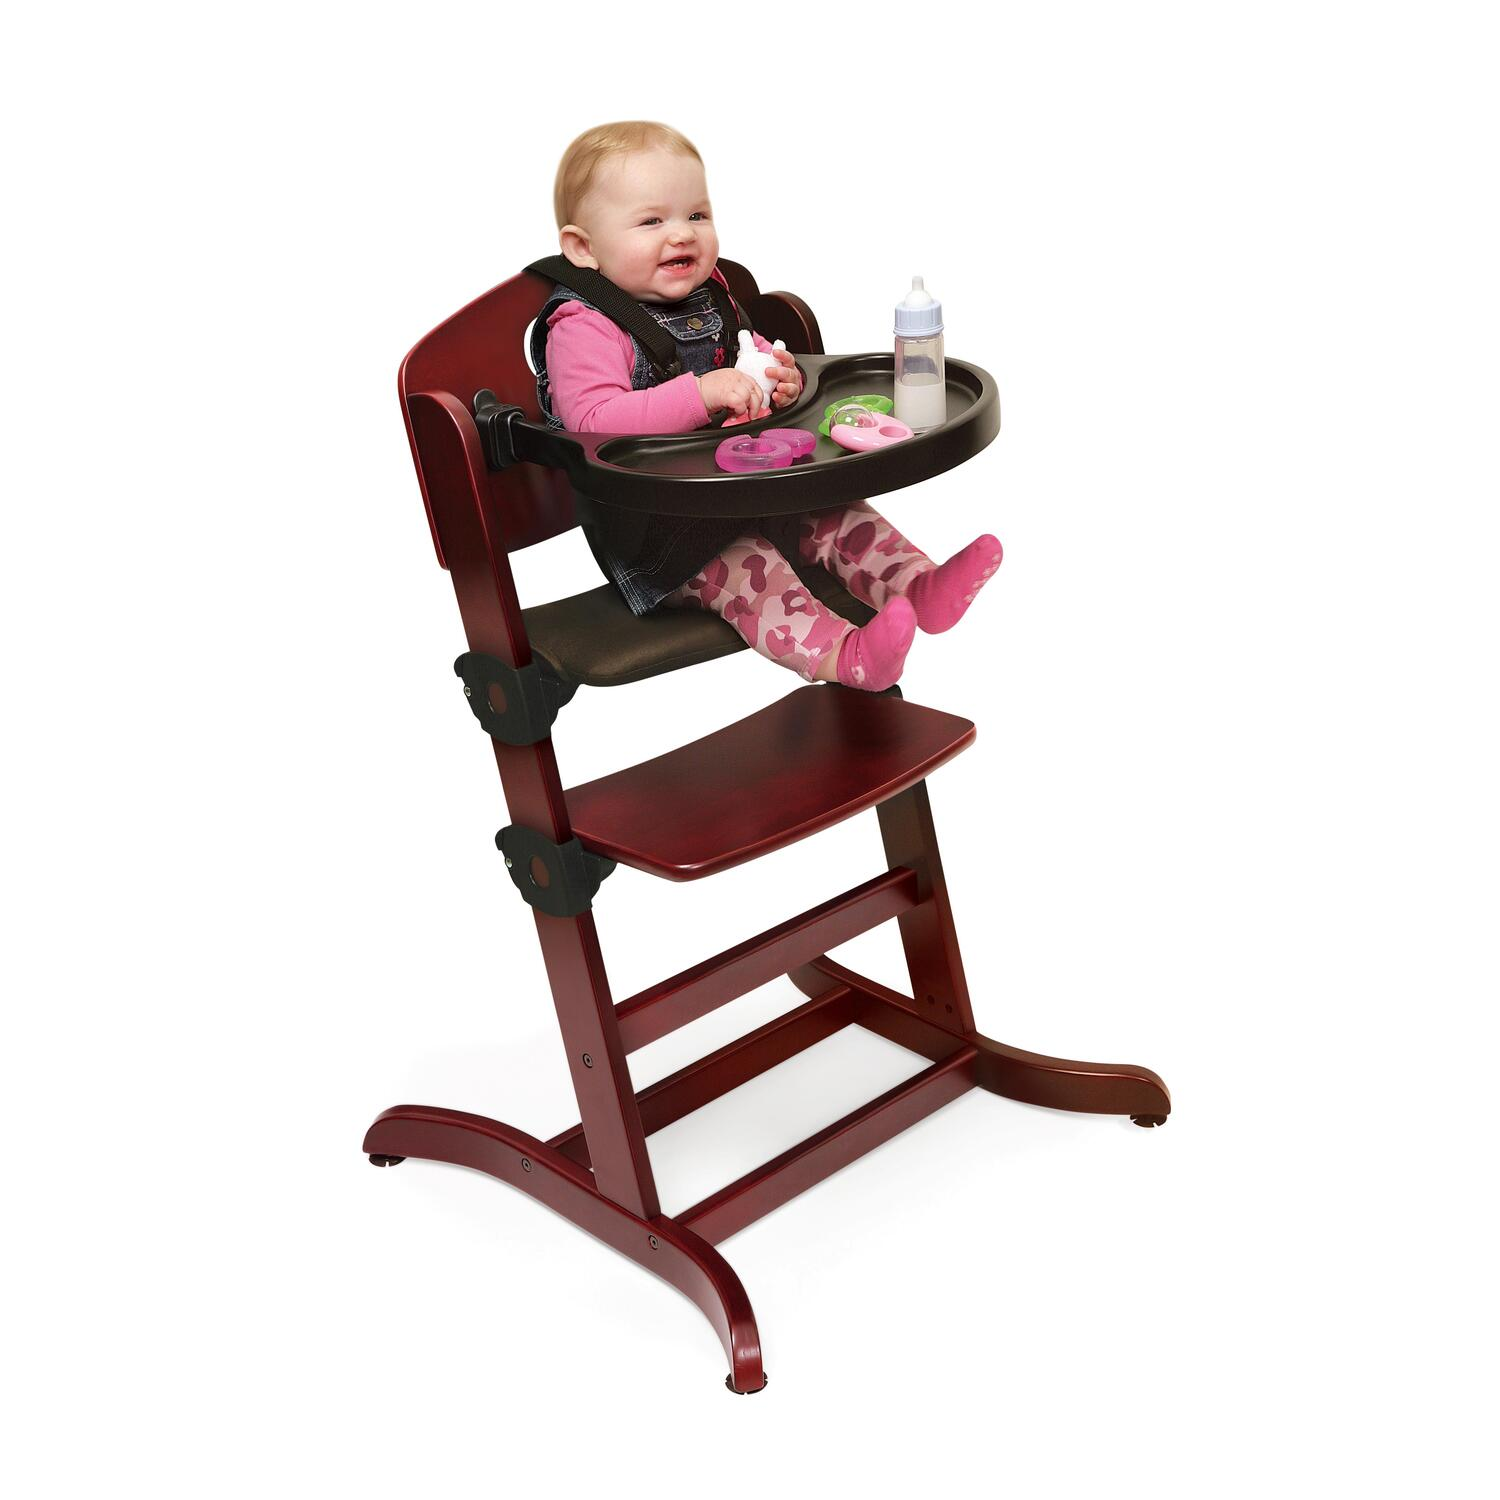 high chair basket zeus thunder ultimate gaming systems badger evolve wood with tray by oj